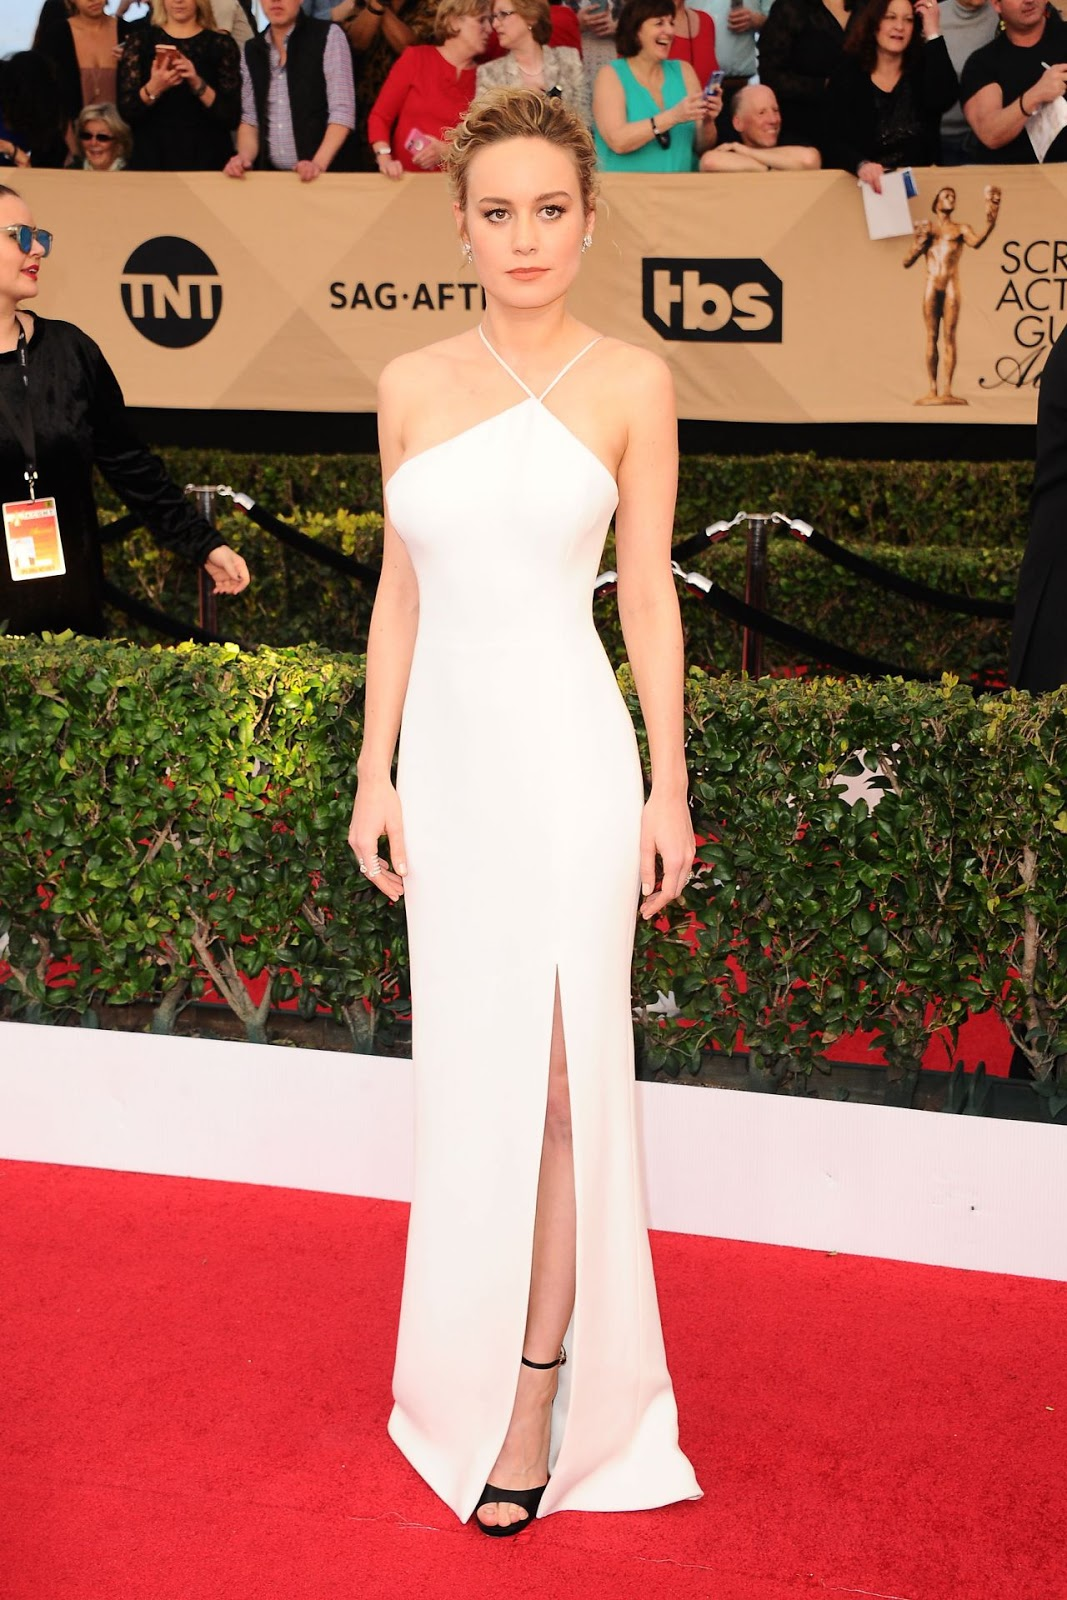 Brie Larson wears elegant ivory gown to the 2017 SAG Awards